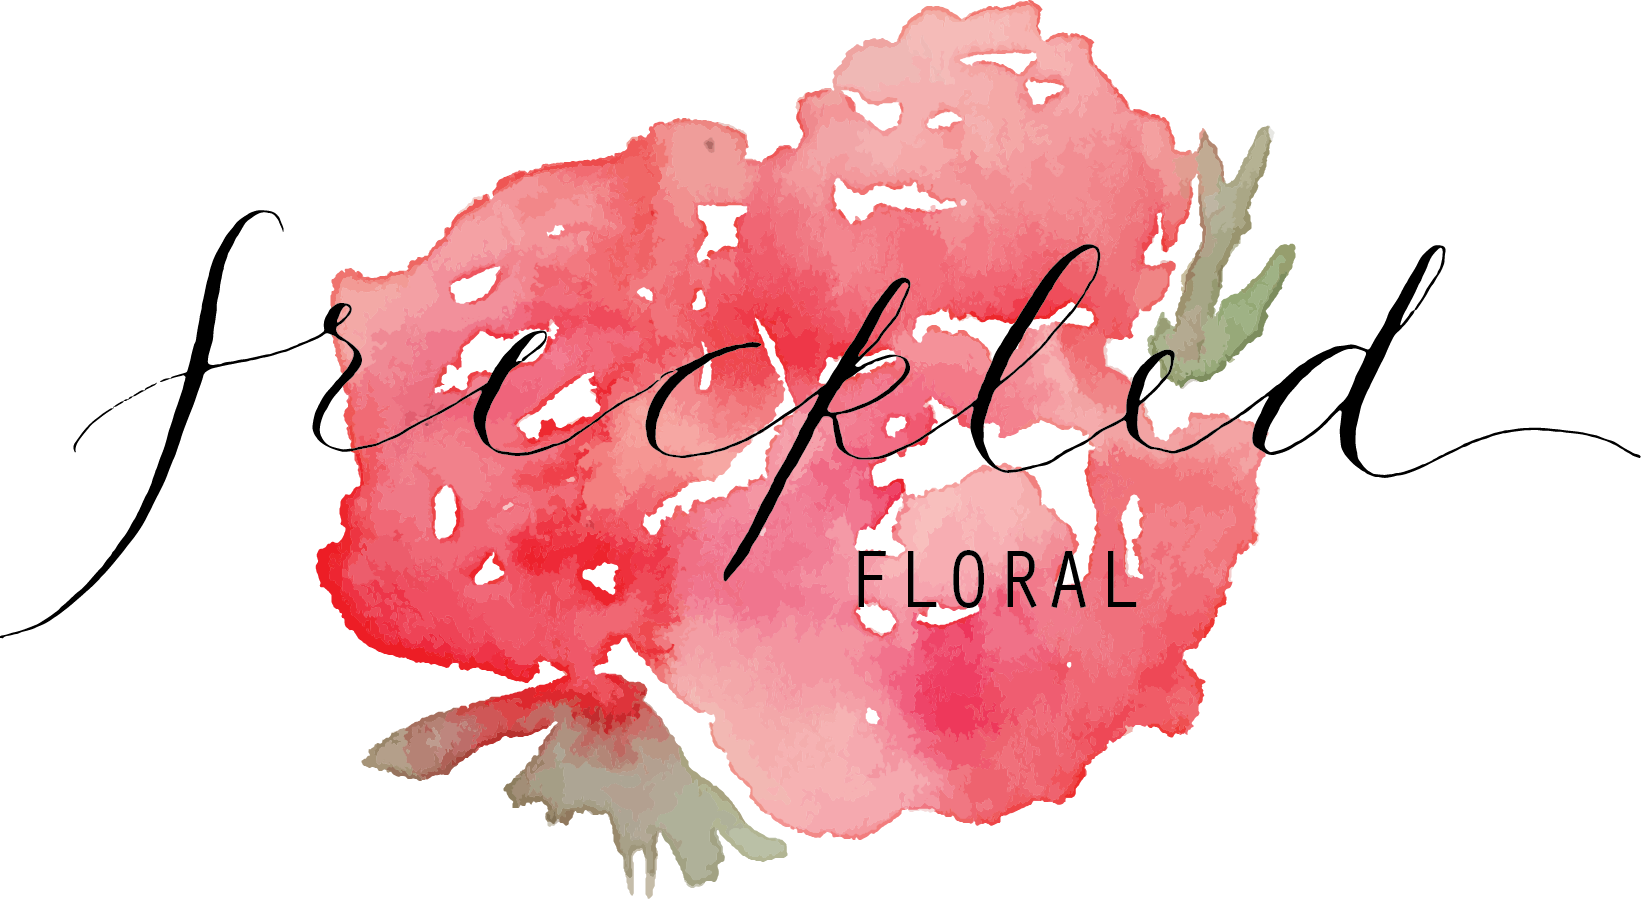 Freckled Floral logo